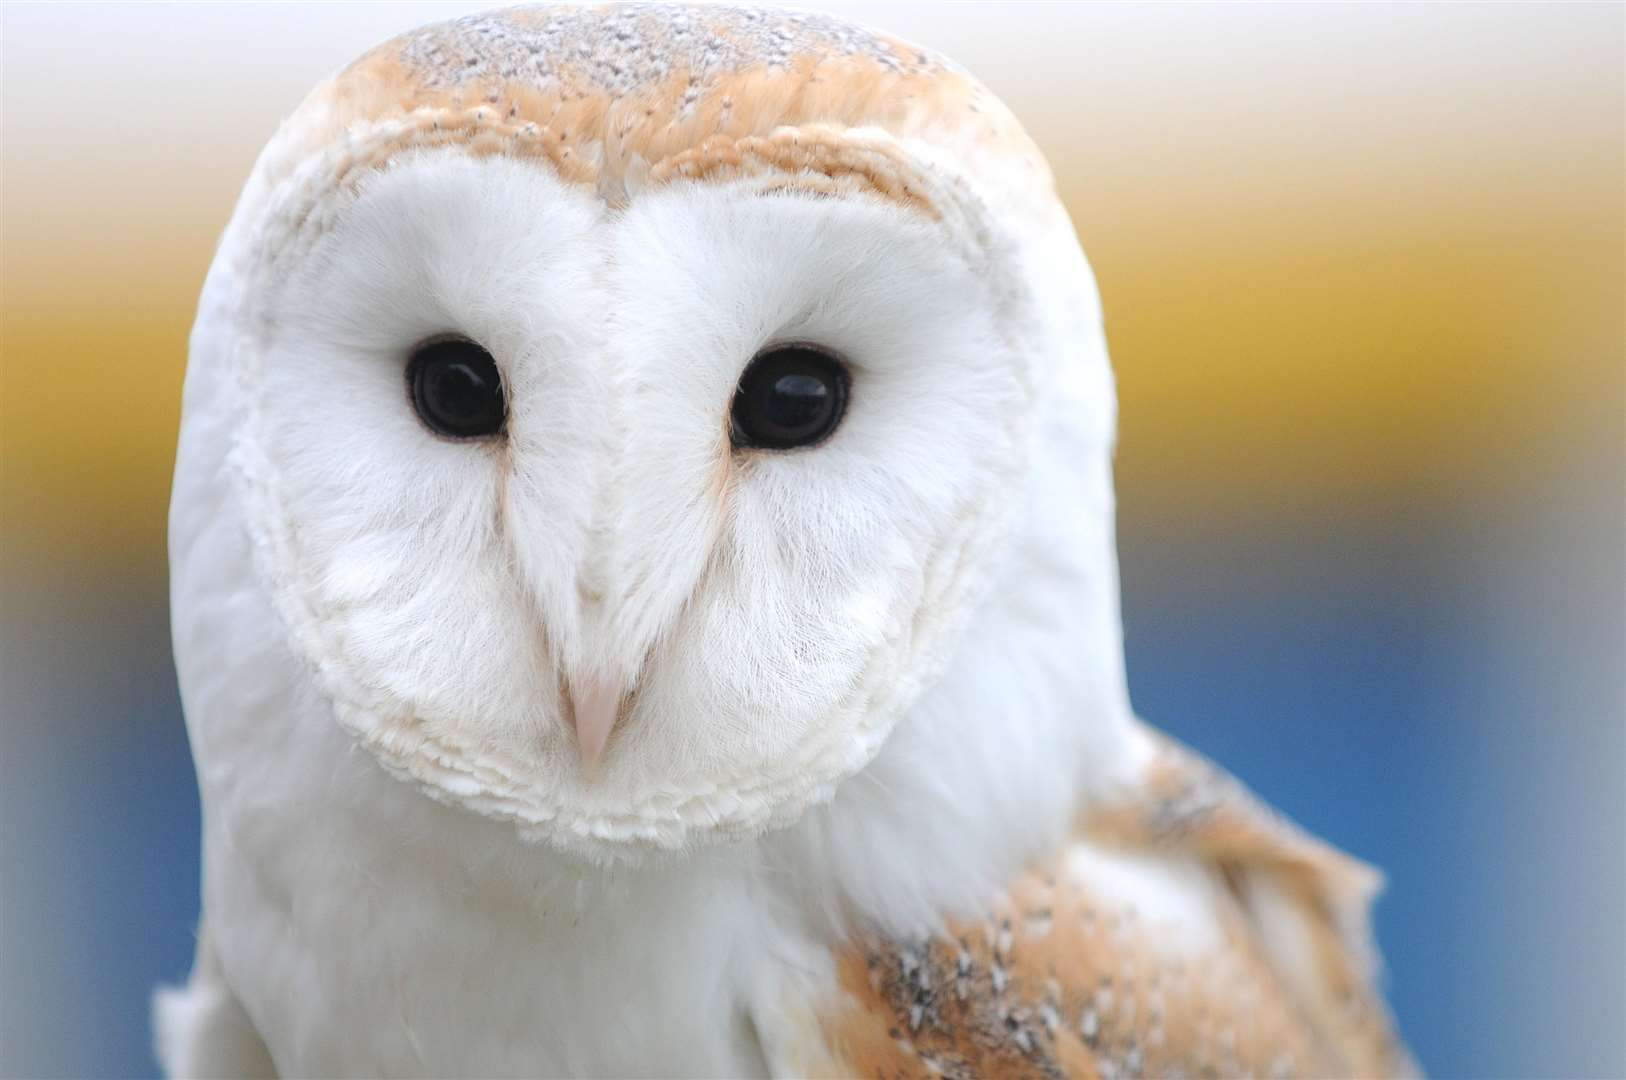 Meet a barn owl at The Beaney this Saturday (November 10)